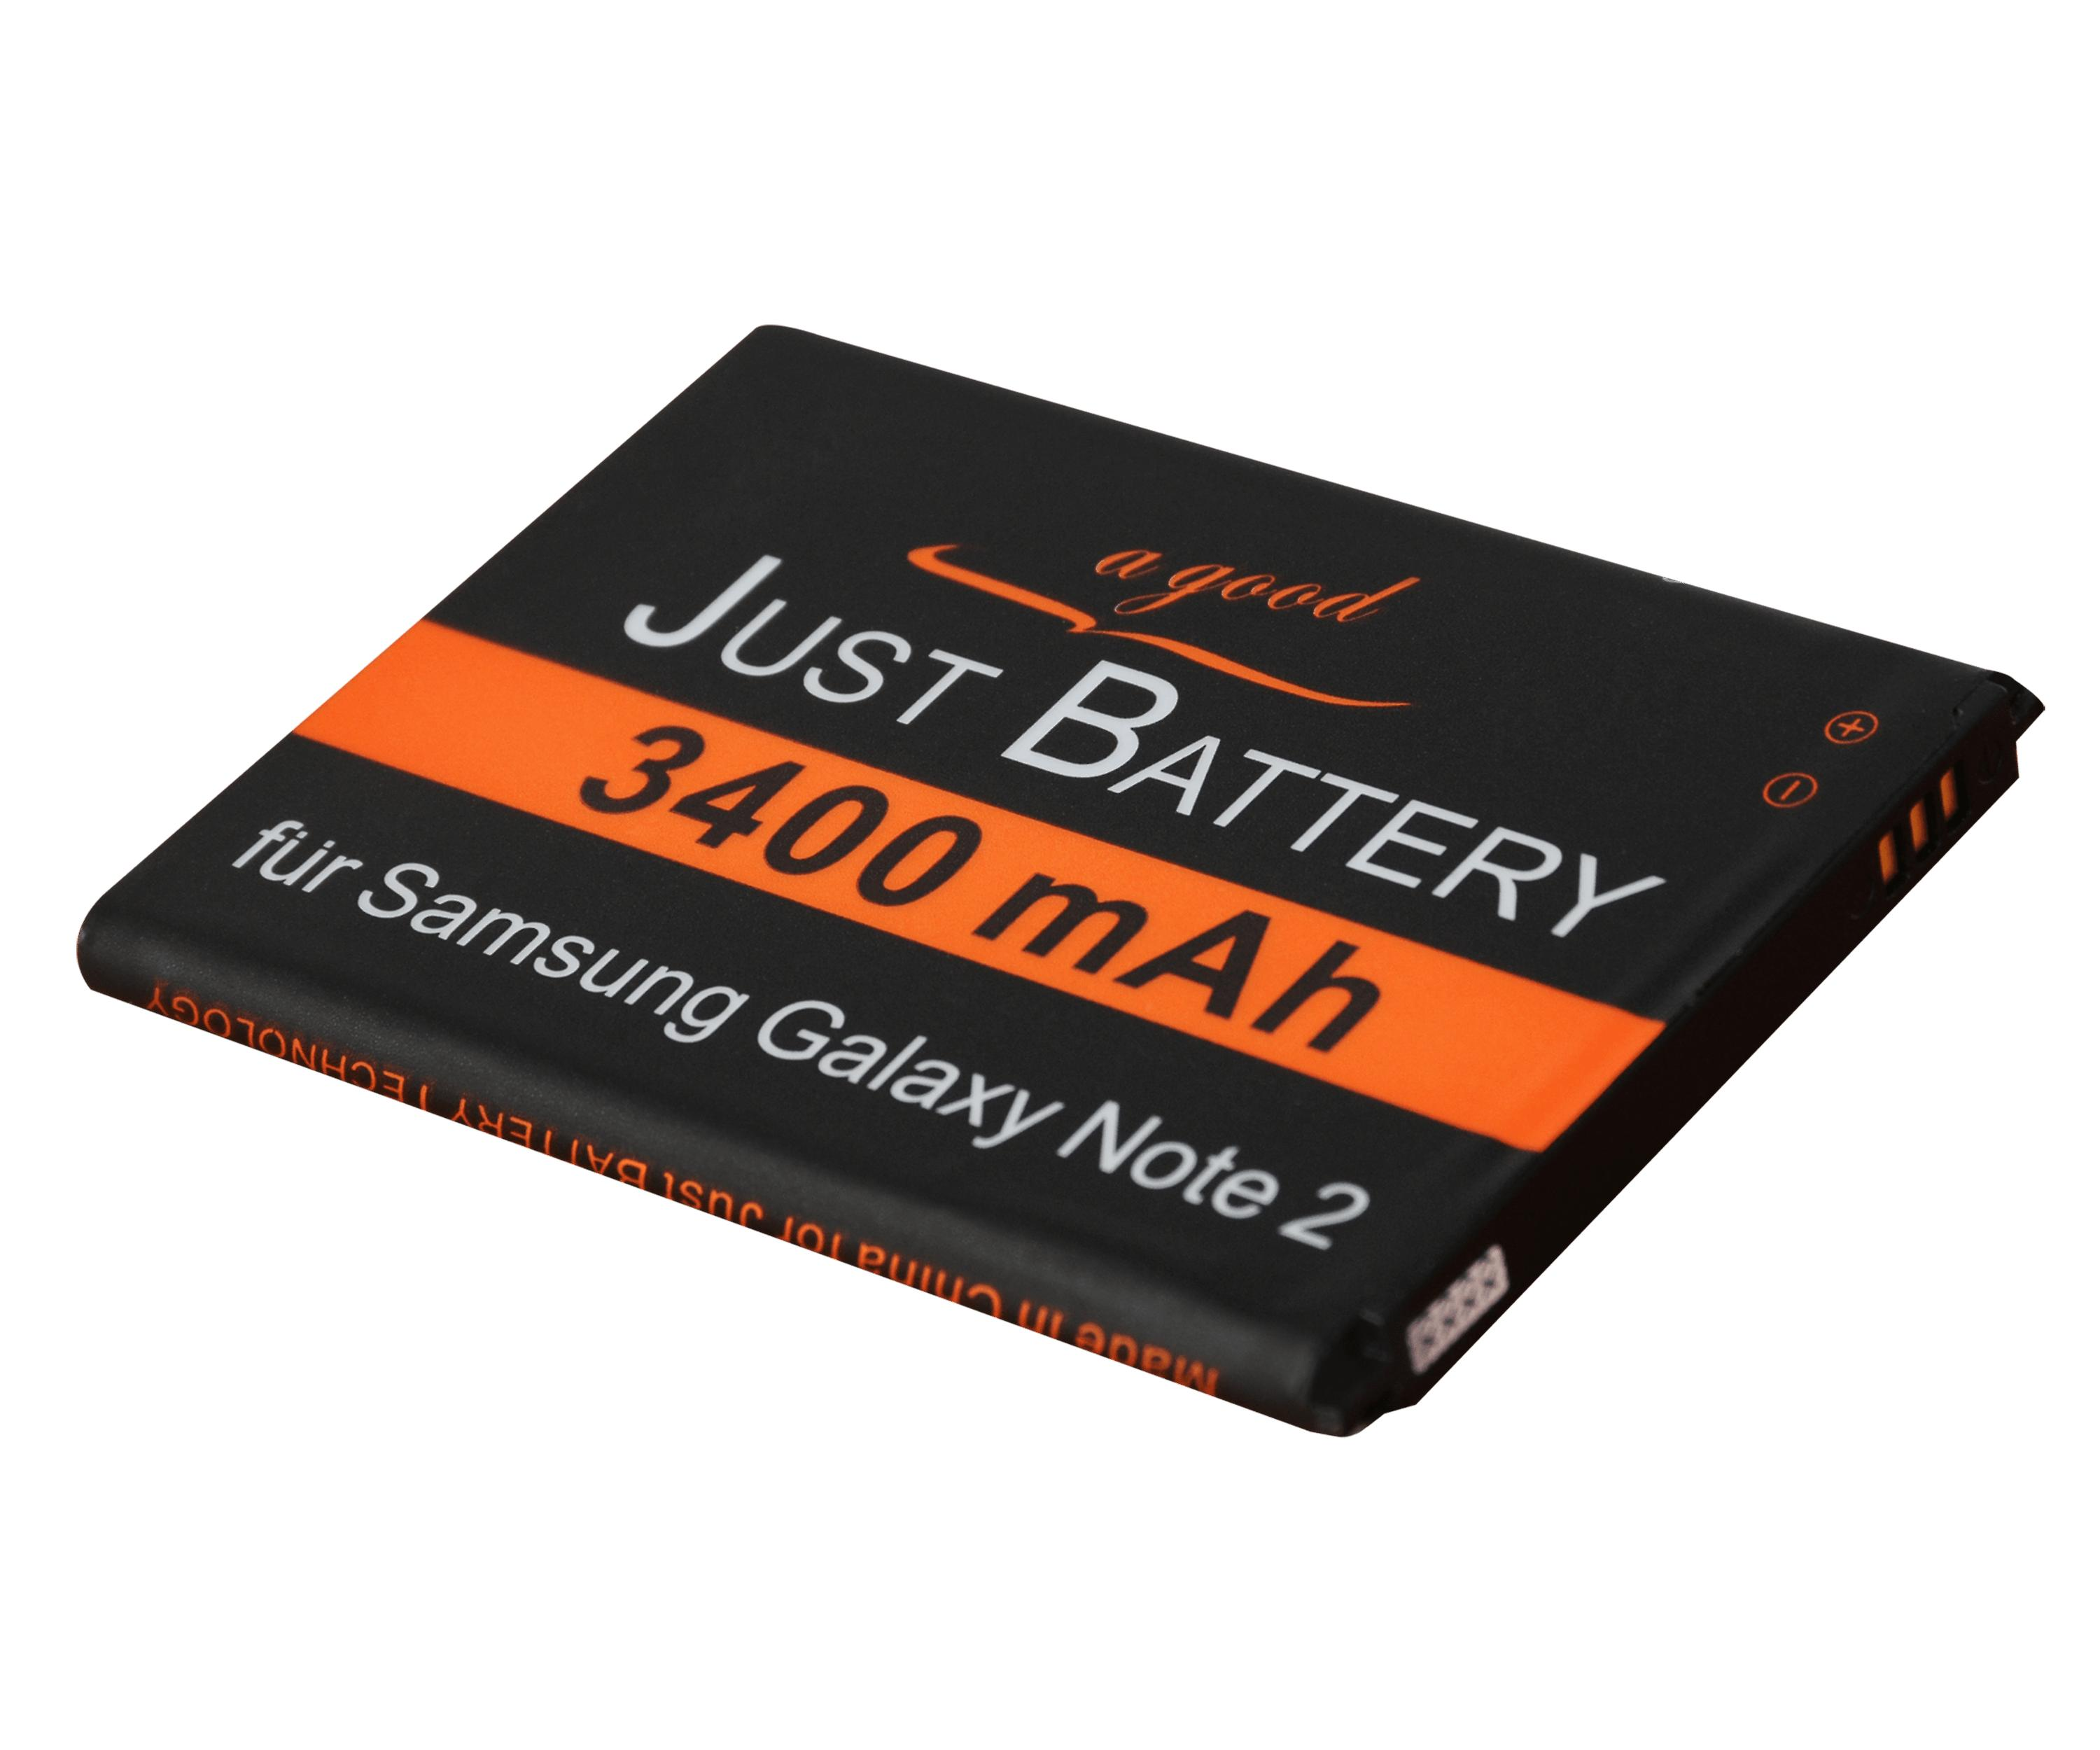 Battery for Samsung Galaxy touch 2 GT n7100